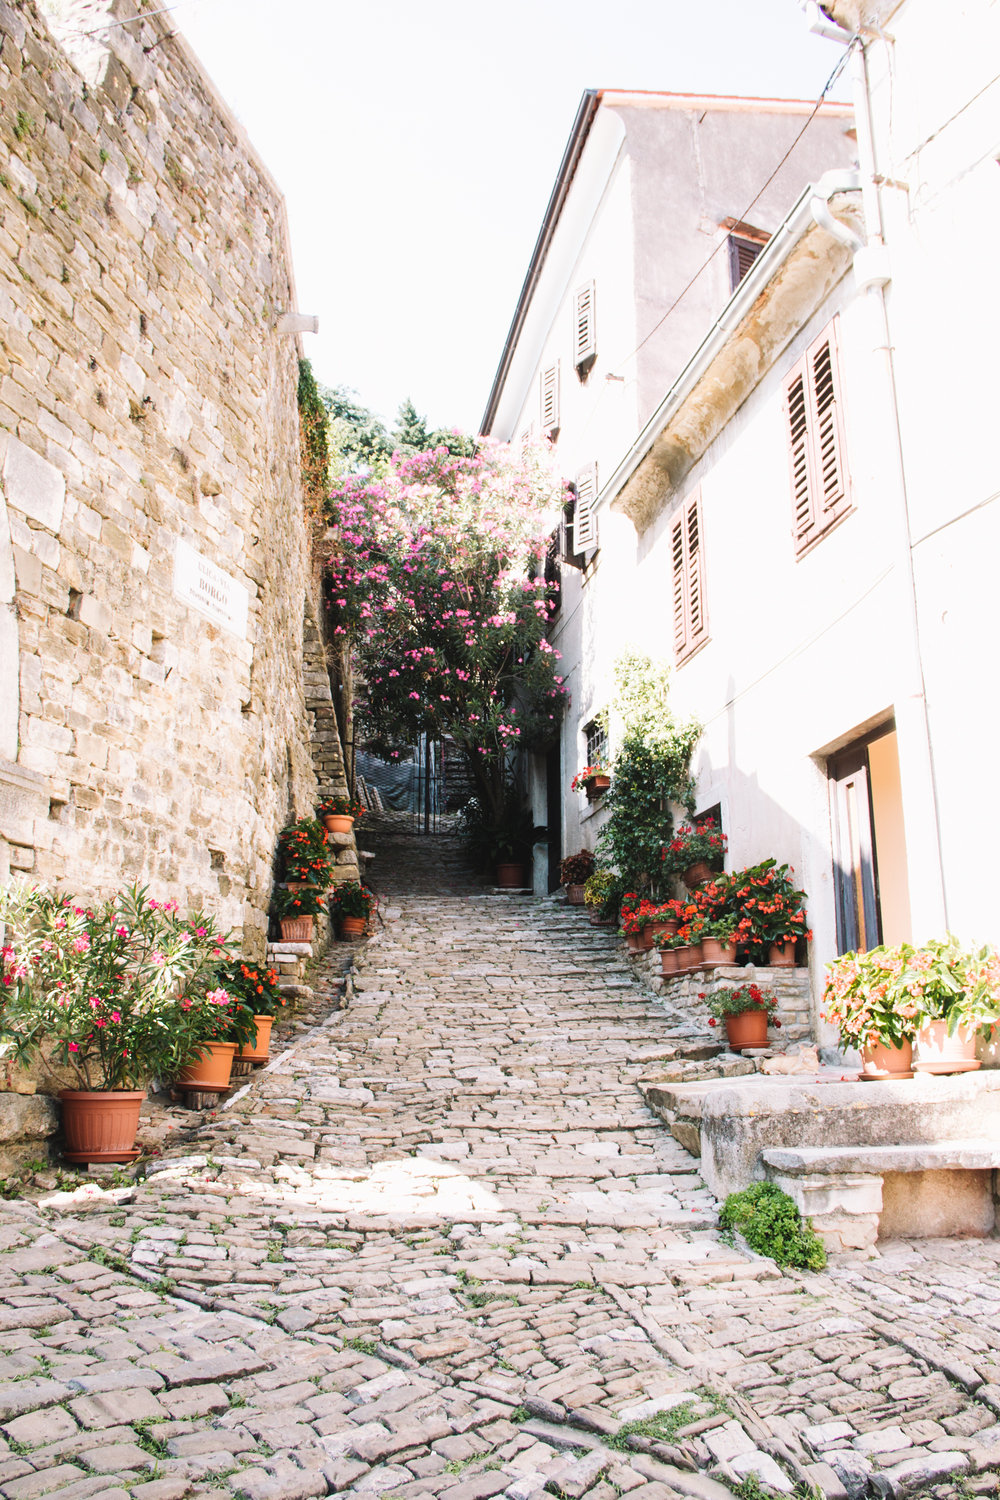 The charming streets of Motovun in Istria